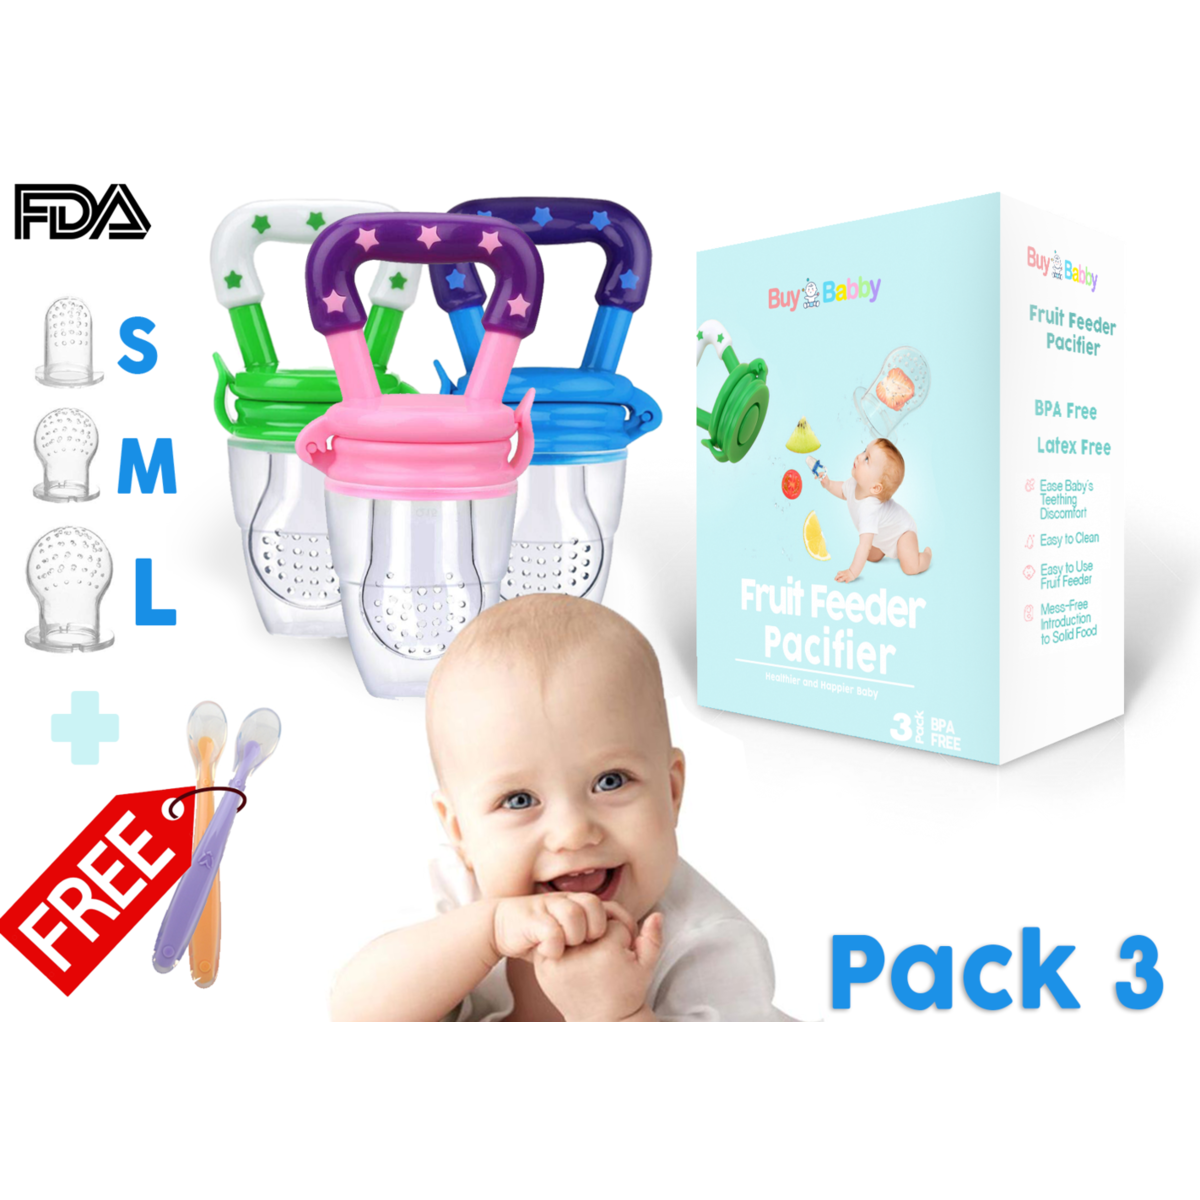 Baby Fresh Fruit Feeder Mills Push Chew Kit Spoon Feeding Food Chew Nutrition Vegetable Bite Pacifier Infant Teething Toy Teether Silicone Pouches for Toddlers